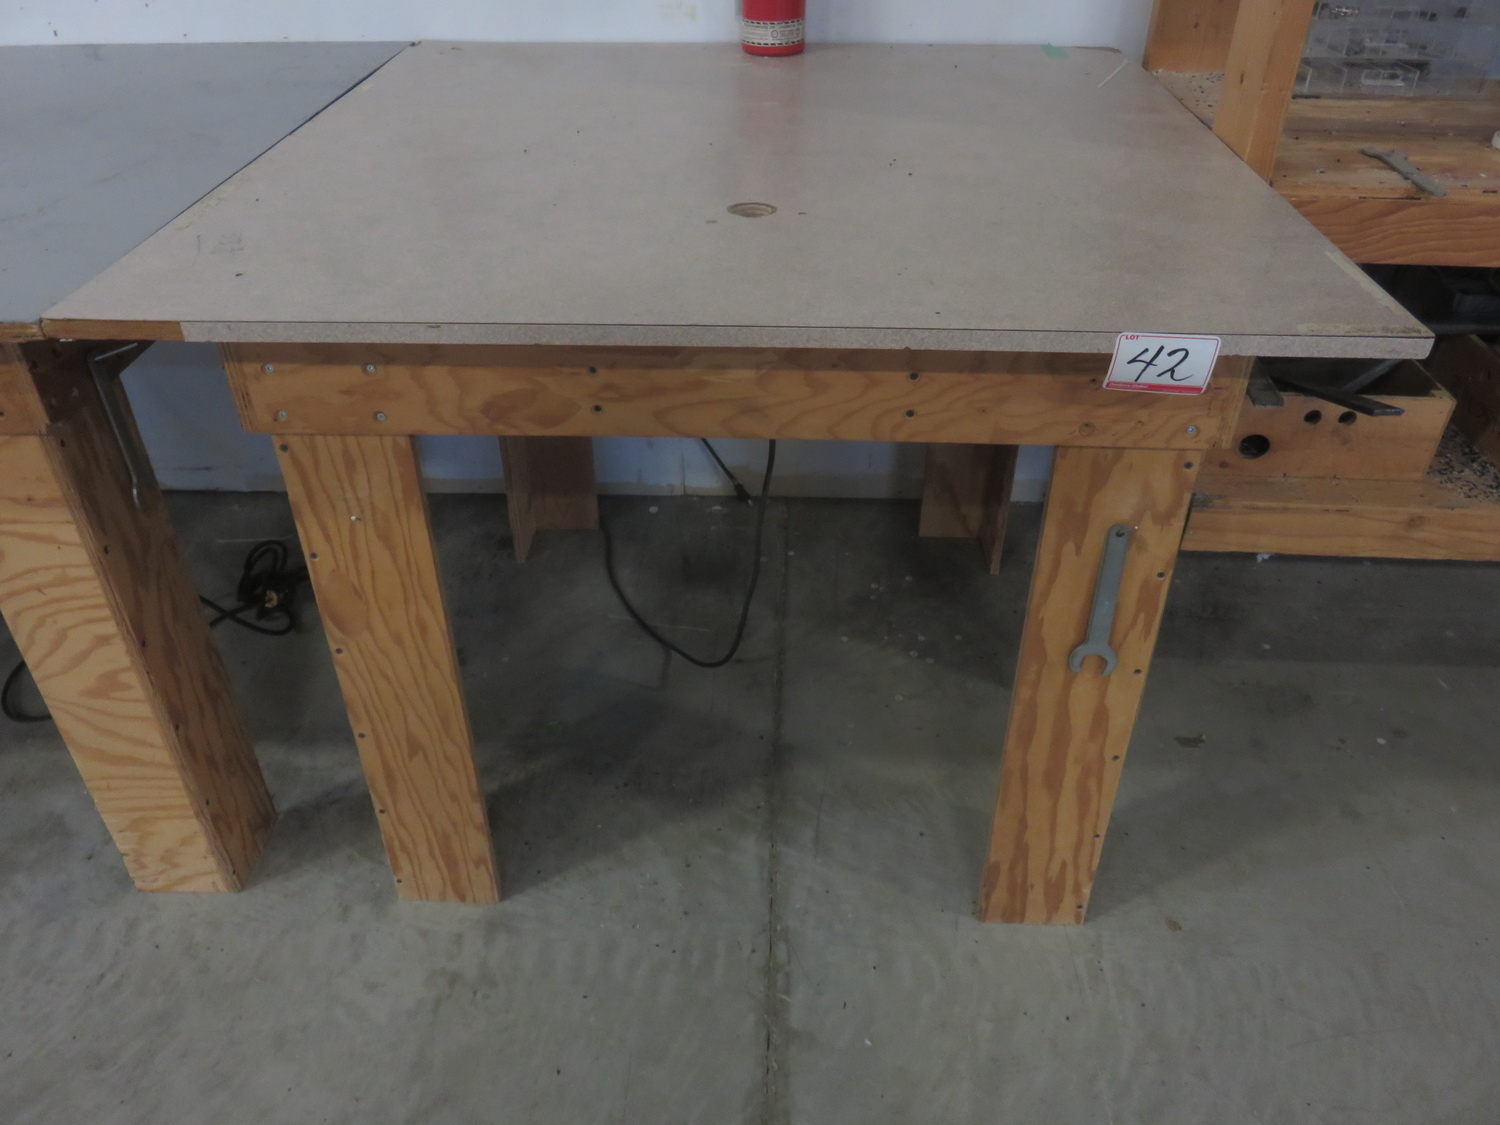 PORTER CABLE 690LR ROUTER W/ TABLE